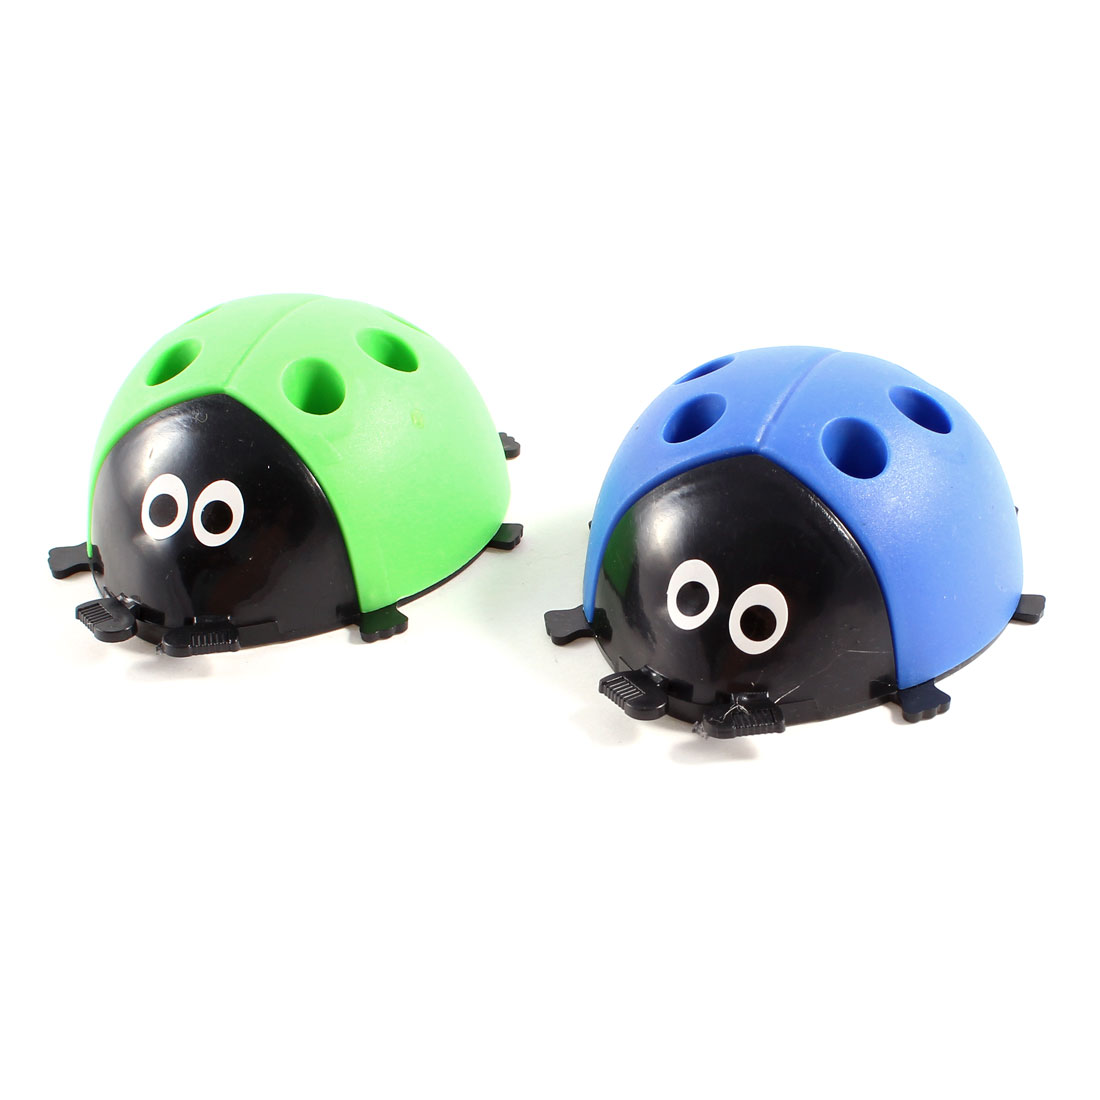 2 Pcs Double Use Plastic Ladybug Sharpener Pencil Holder Green Blue